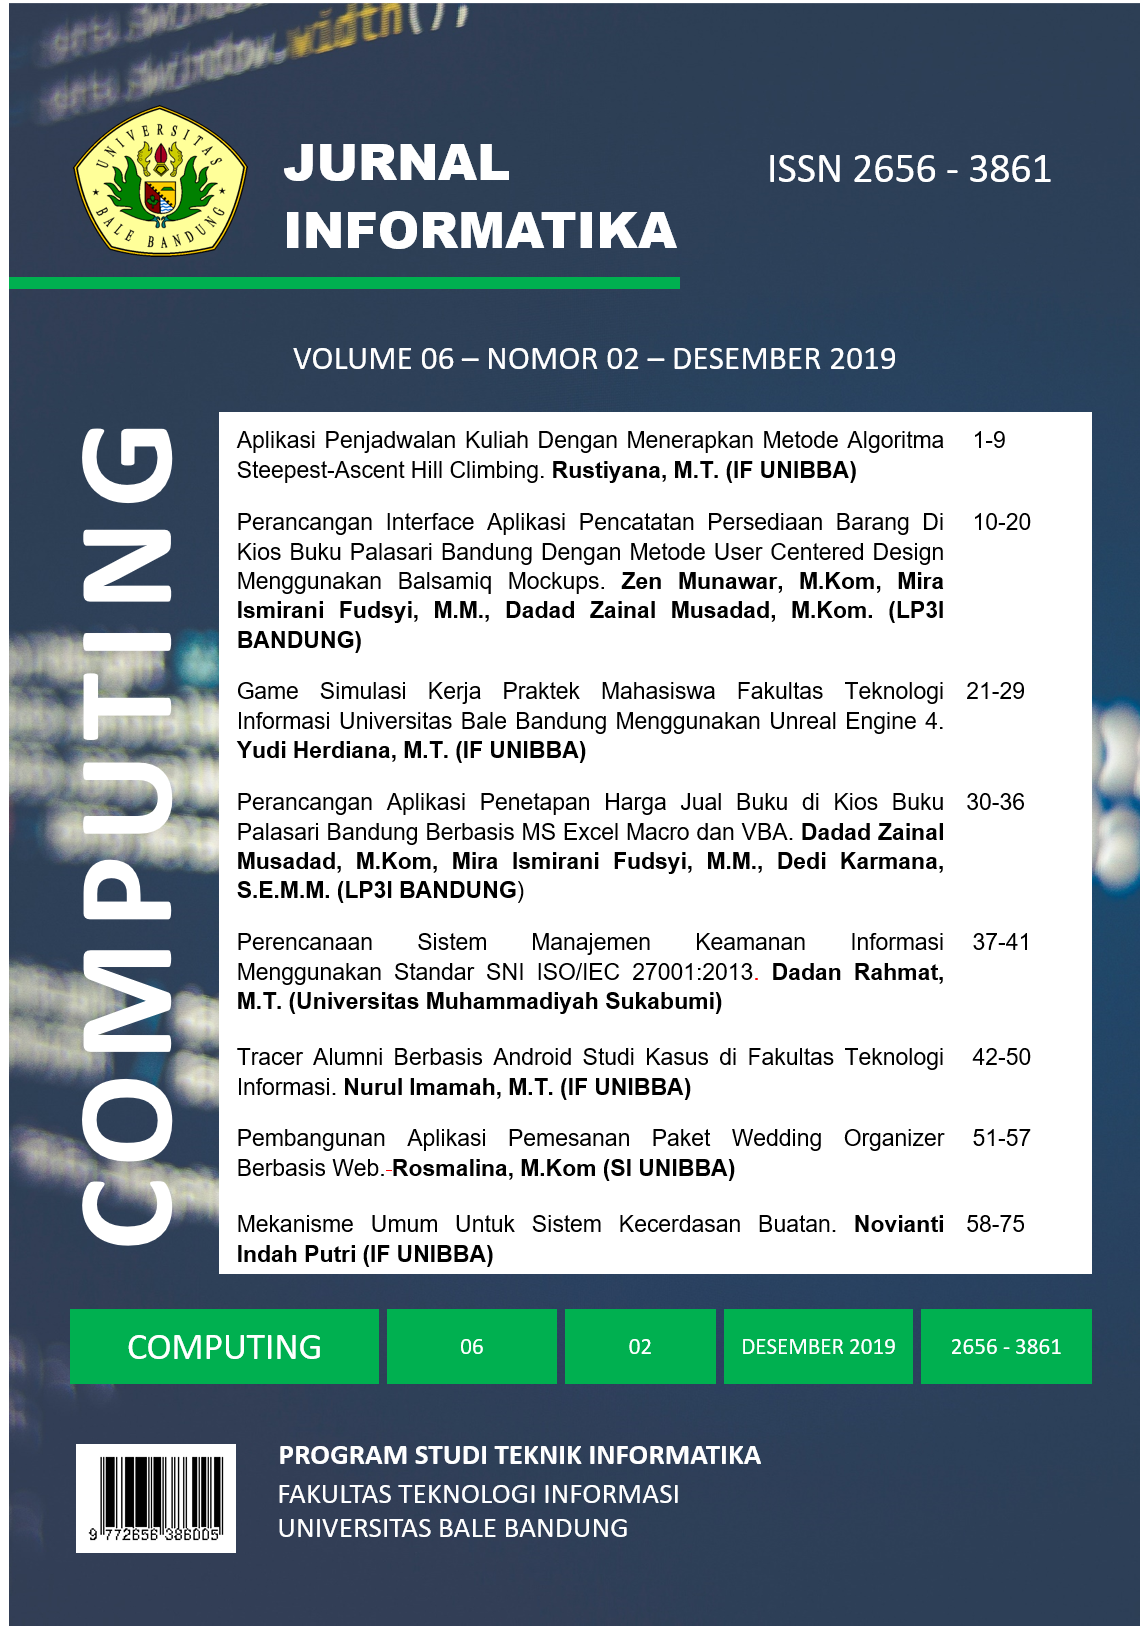 Jurnal Informatika COMPUTING Vol 6 No 2 Desember 2019 ISSN 2656-3861